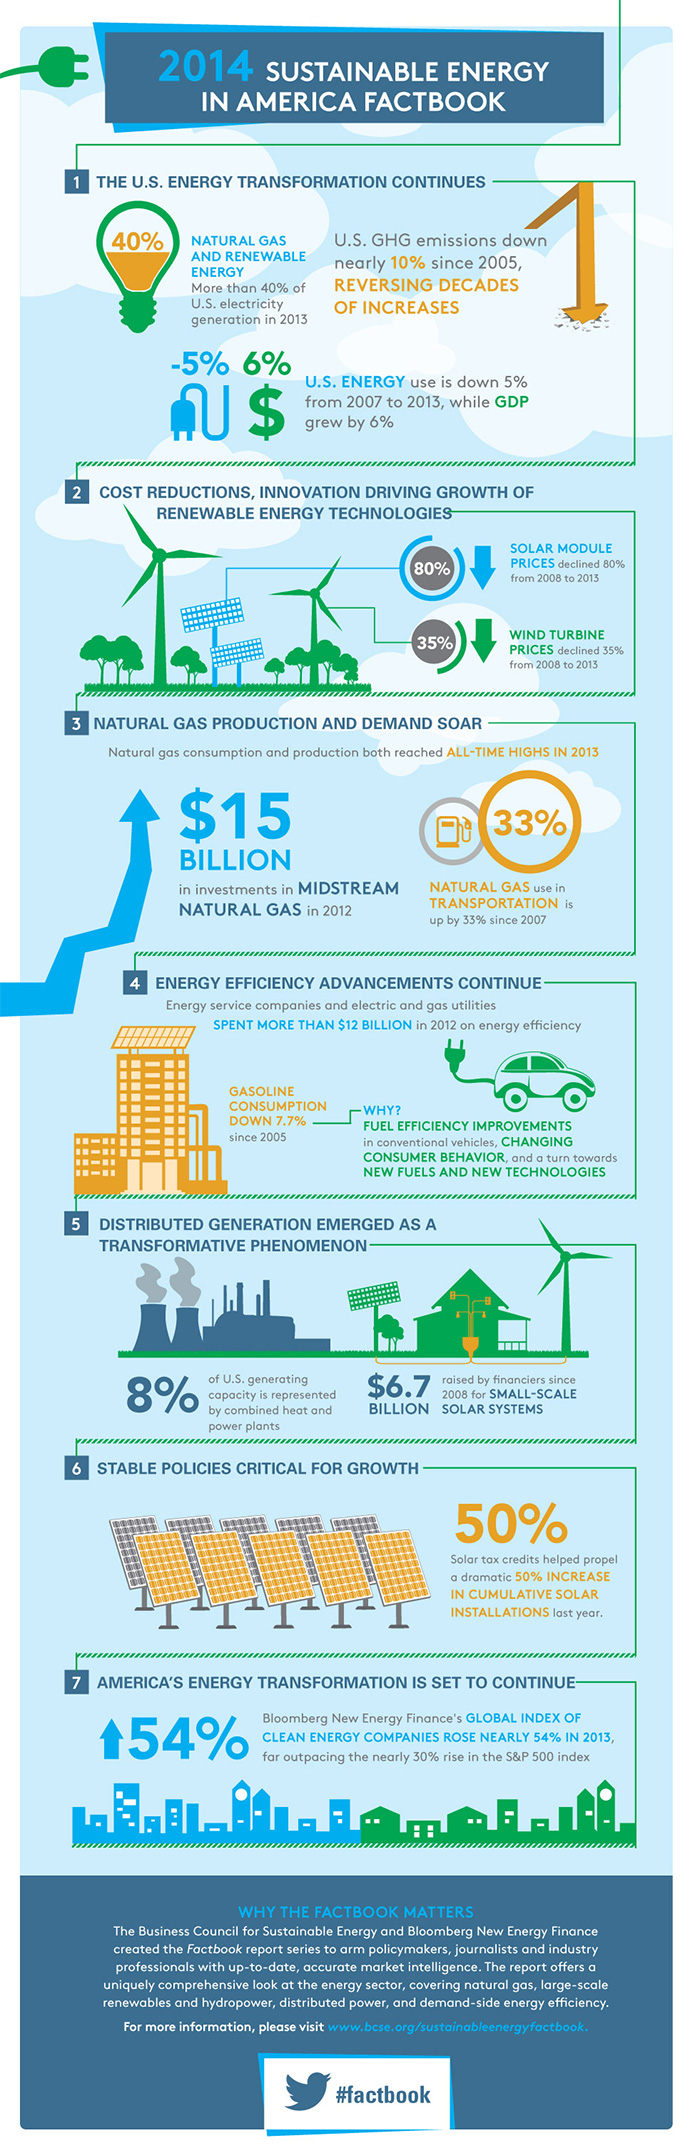 2014-Sustainable-Energy-in-America-Factbook-Infographic